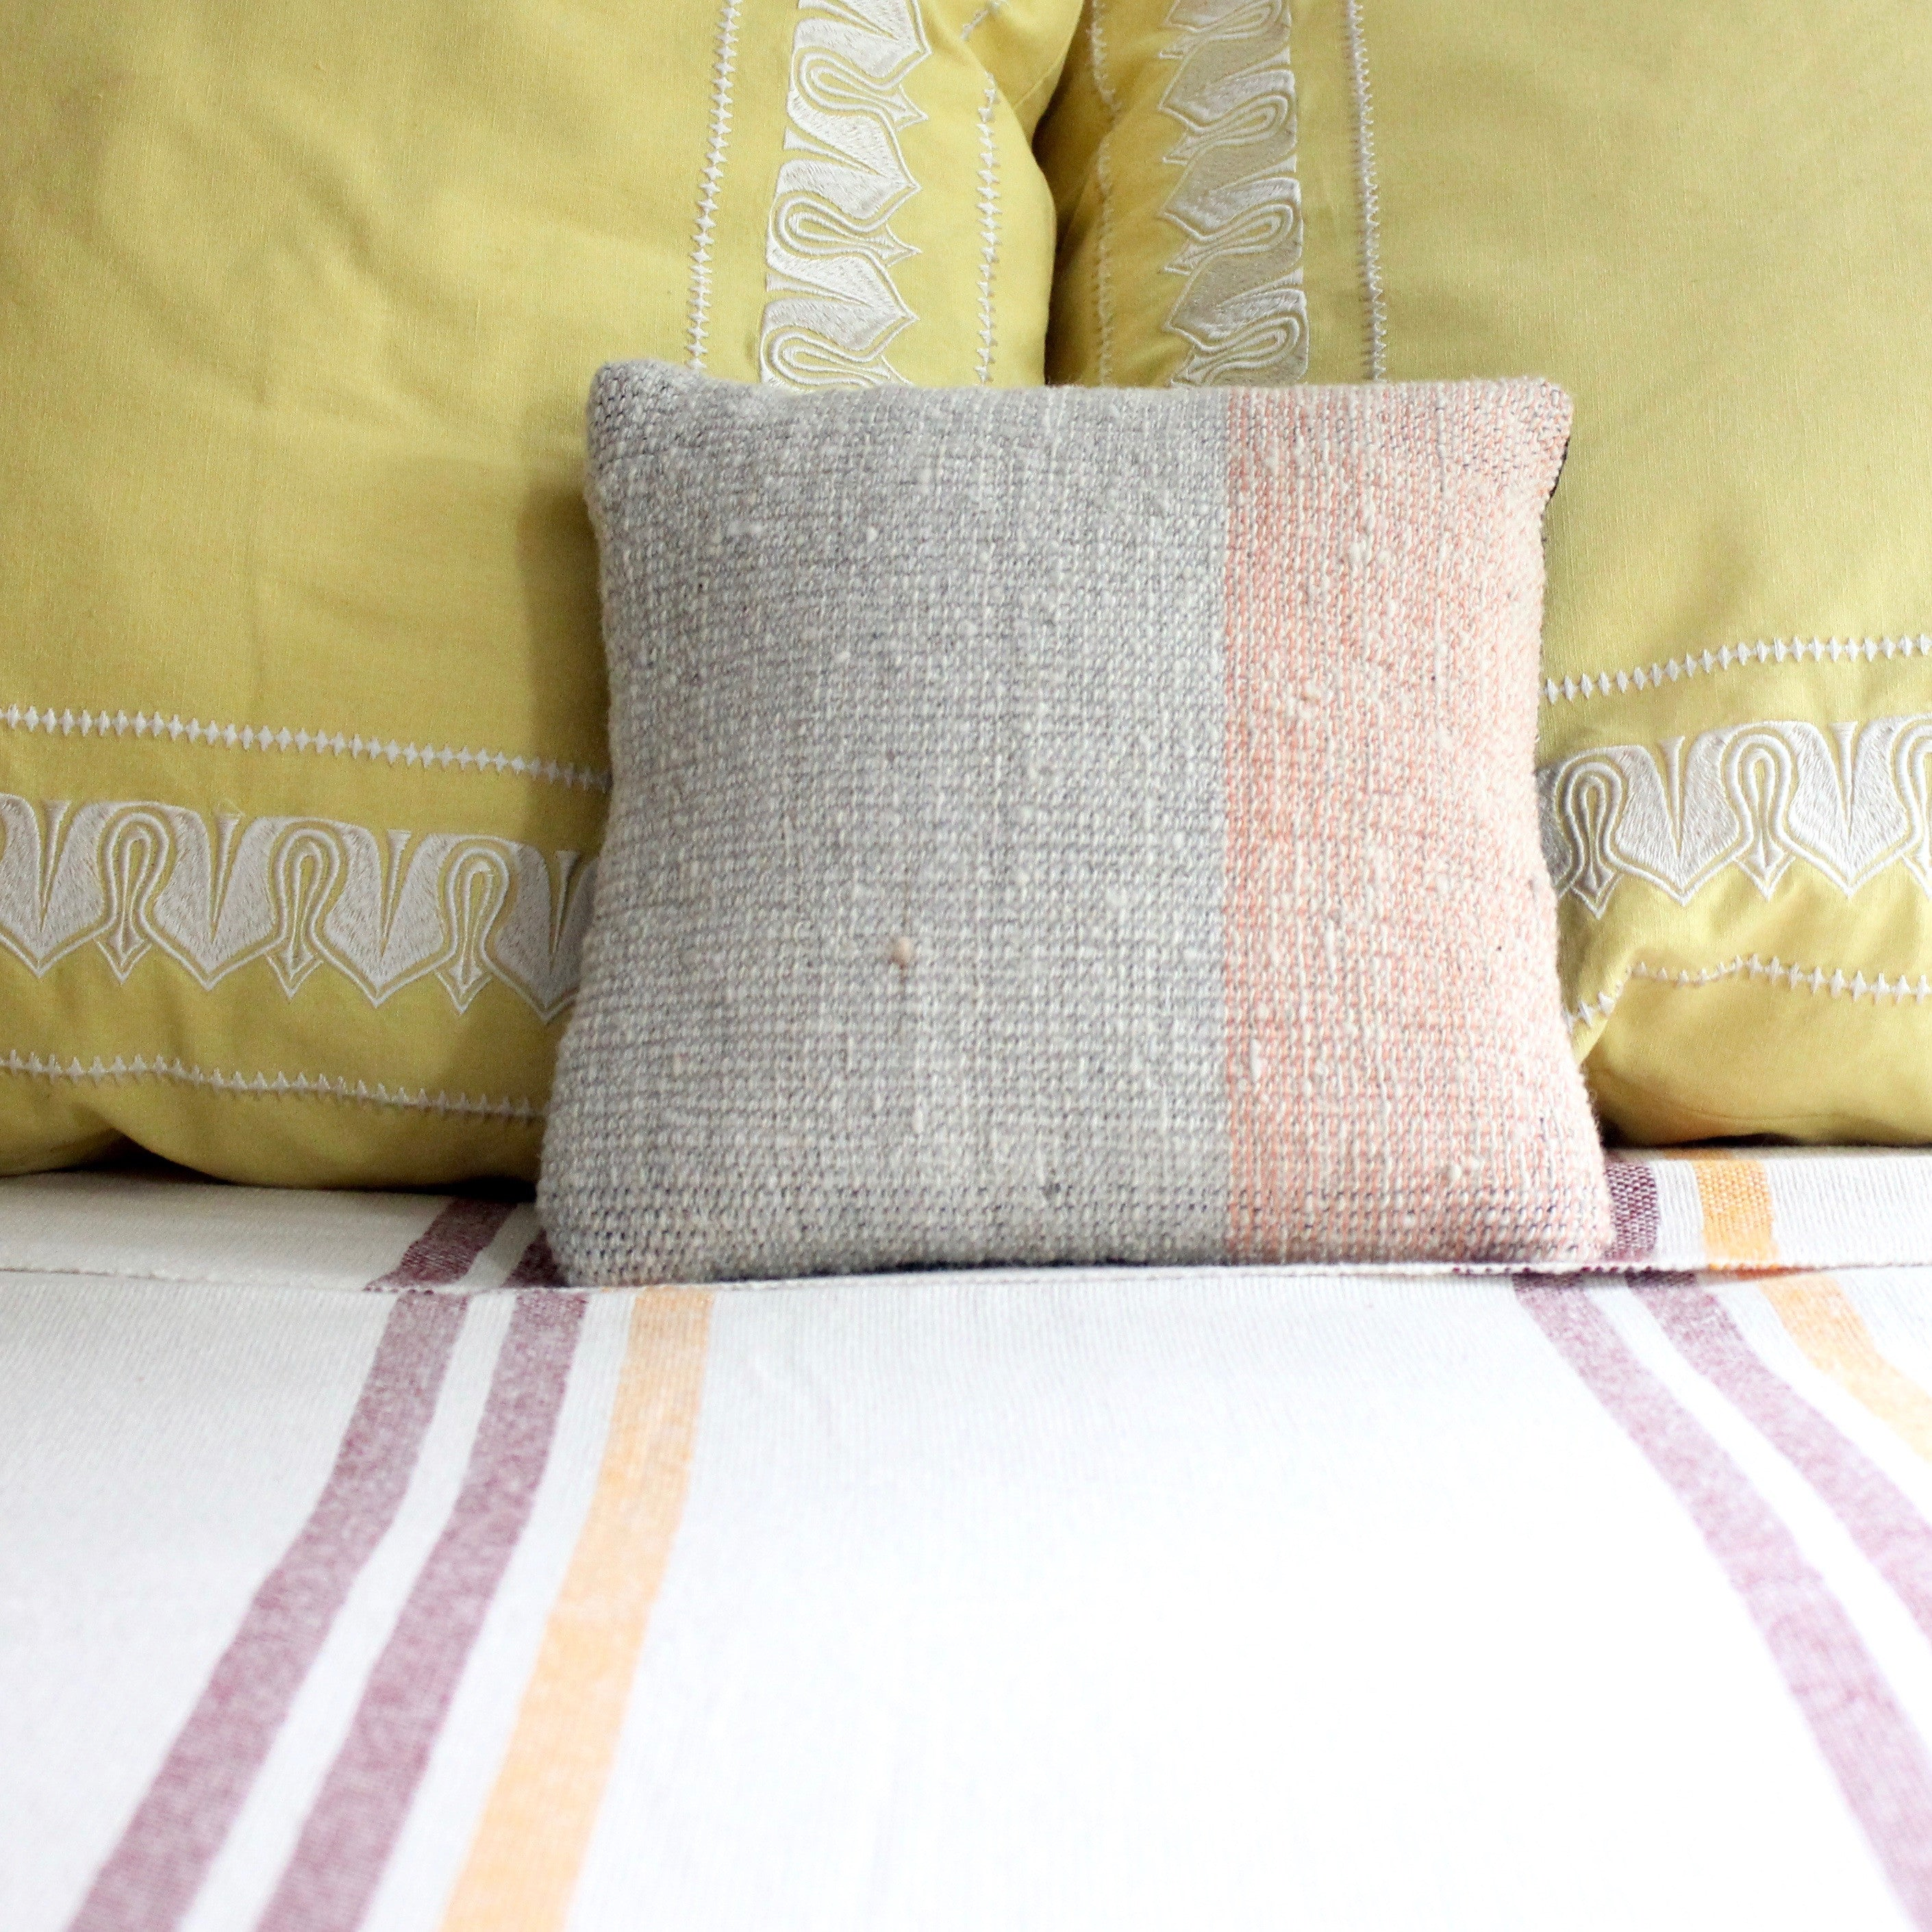 handwoven wool pillow by Living Threads Co. artisans